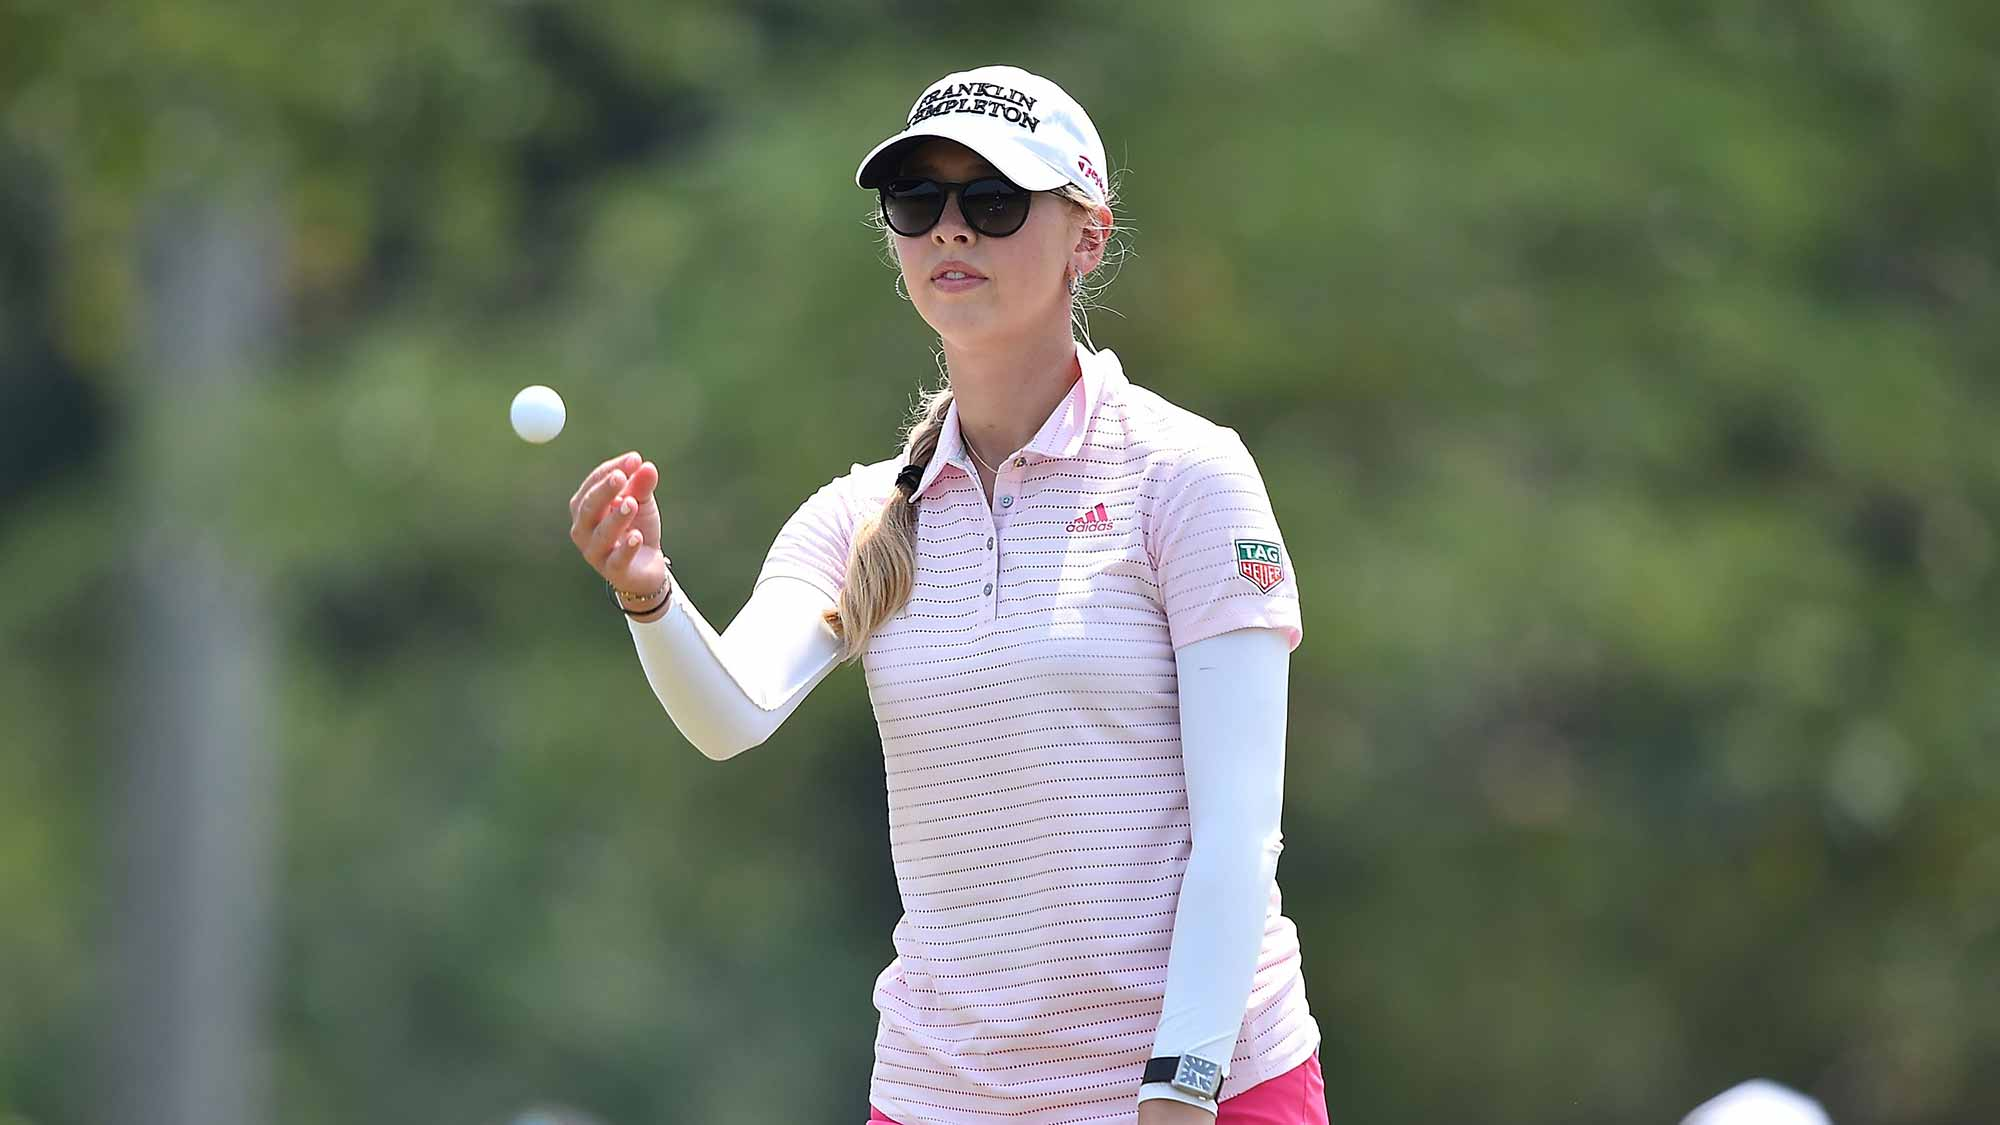 Jessica Korda of the United States throws a golf ball during day three of the 2016 Honda LPGA Thailand at Siam Country Club